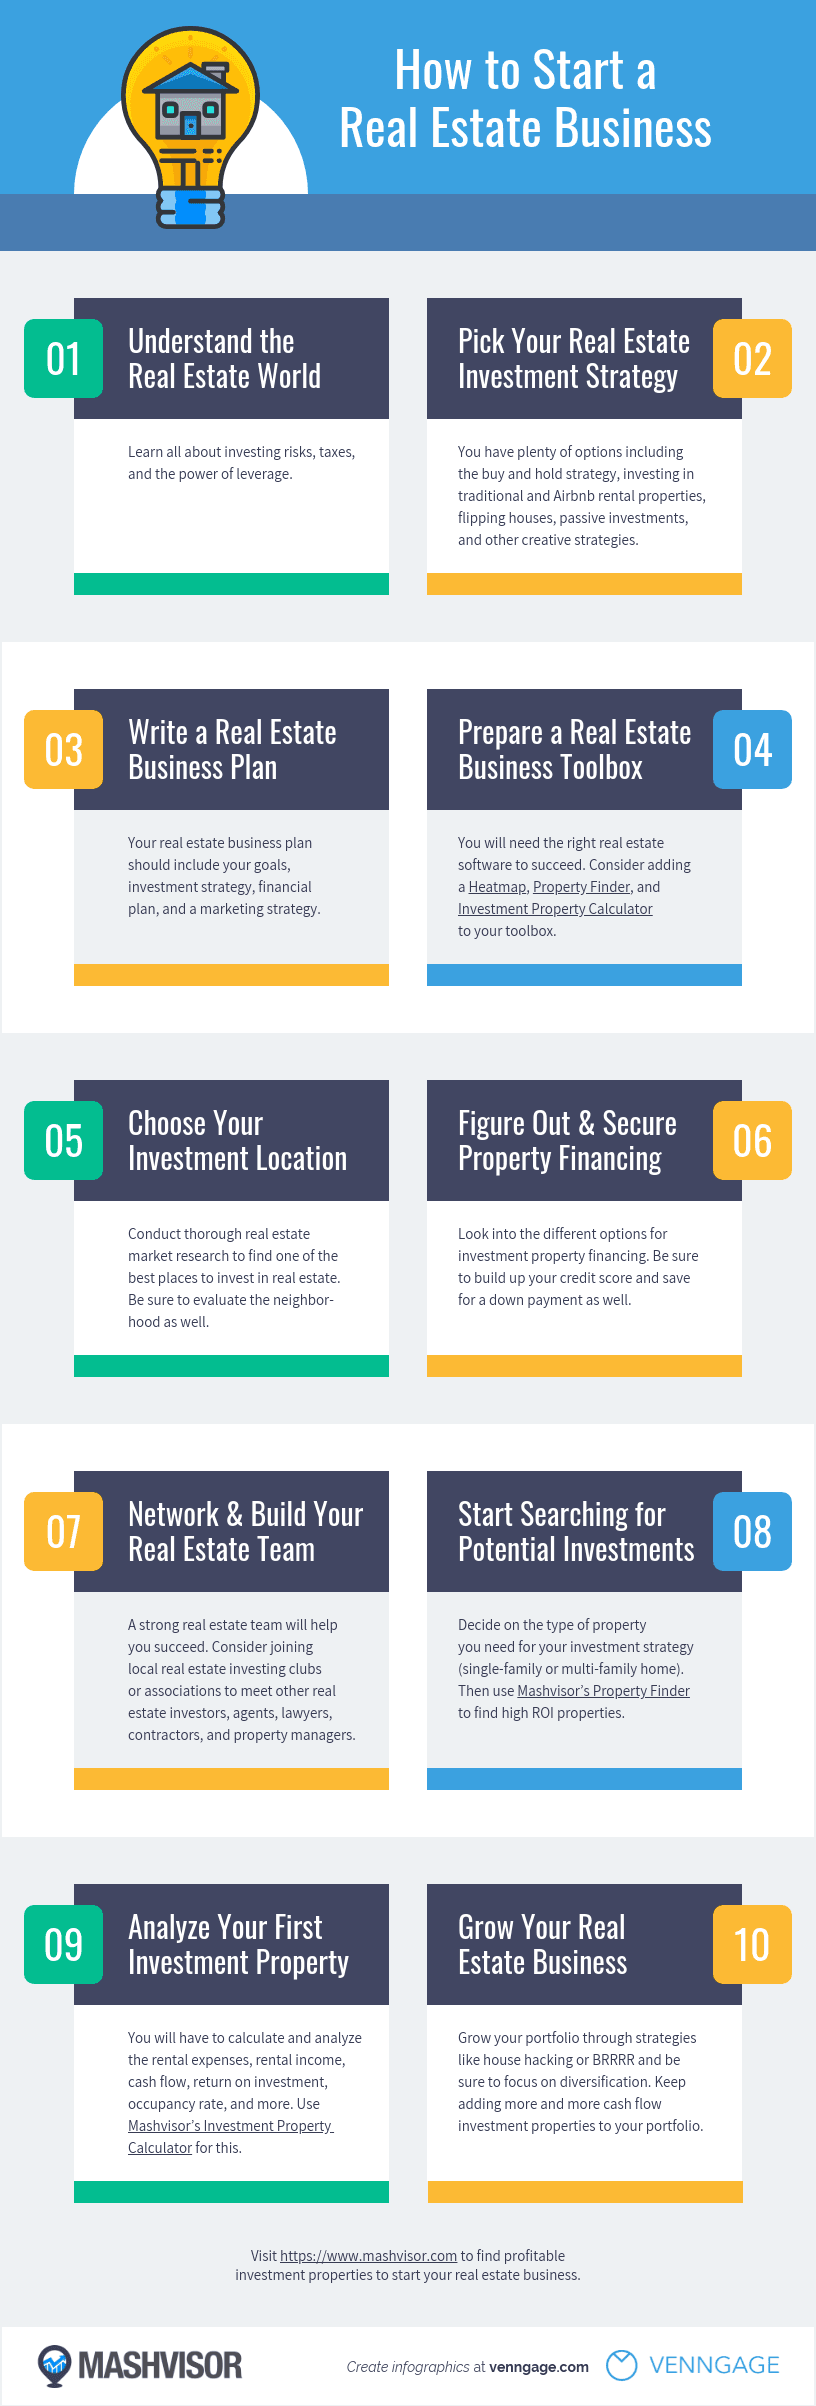 How To Start A Real Estate Business Infographic Here Are The 10 Steps To Starting A Real Esta Real Estate Business Real Estate Infographic Business Infographic